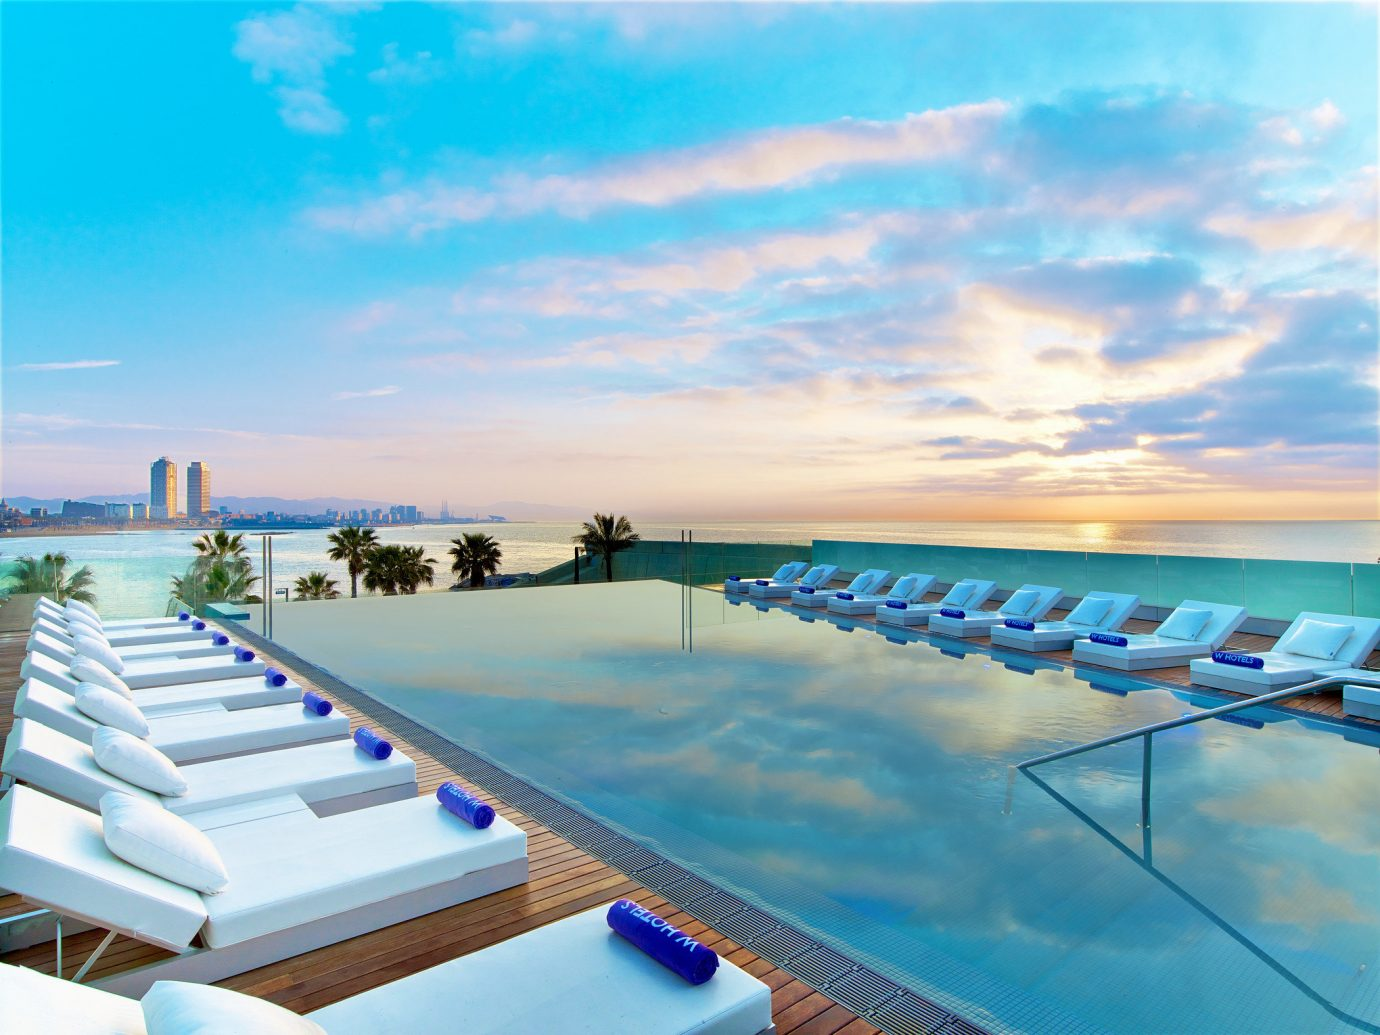 Hotels sky swimming pool leisure vacation caribbean Resort Ocean Sea row estate line lined